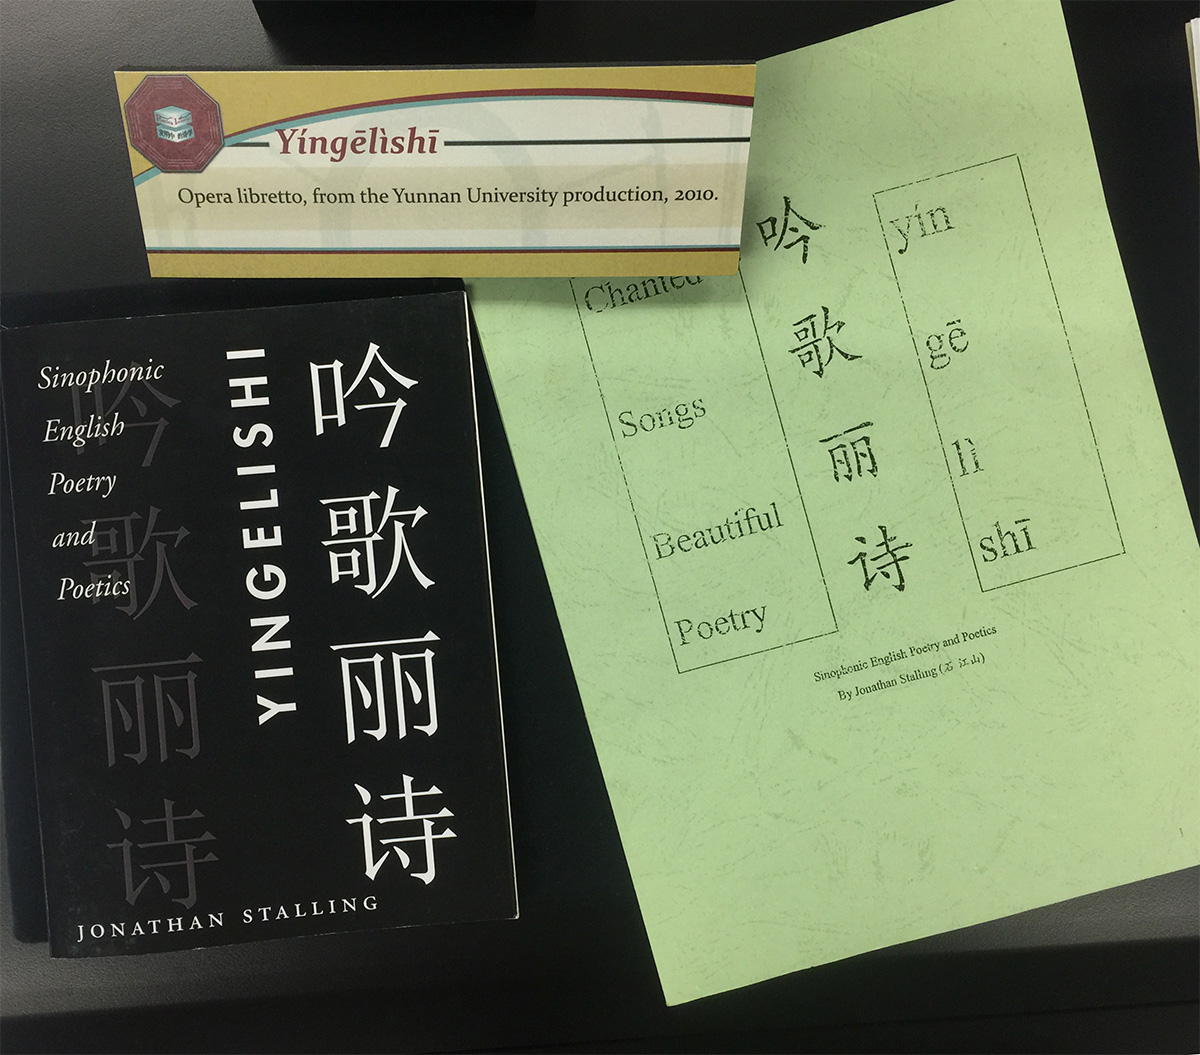 Yinglishi books and text as displayed at the University of Oklahoma Bizzell Memorial Library during the Academic Year 2017-2018